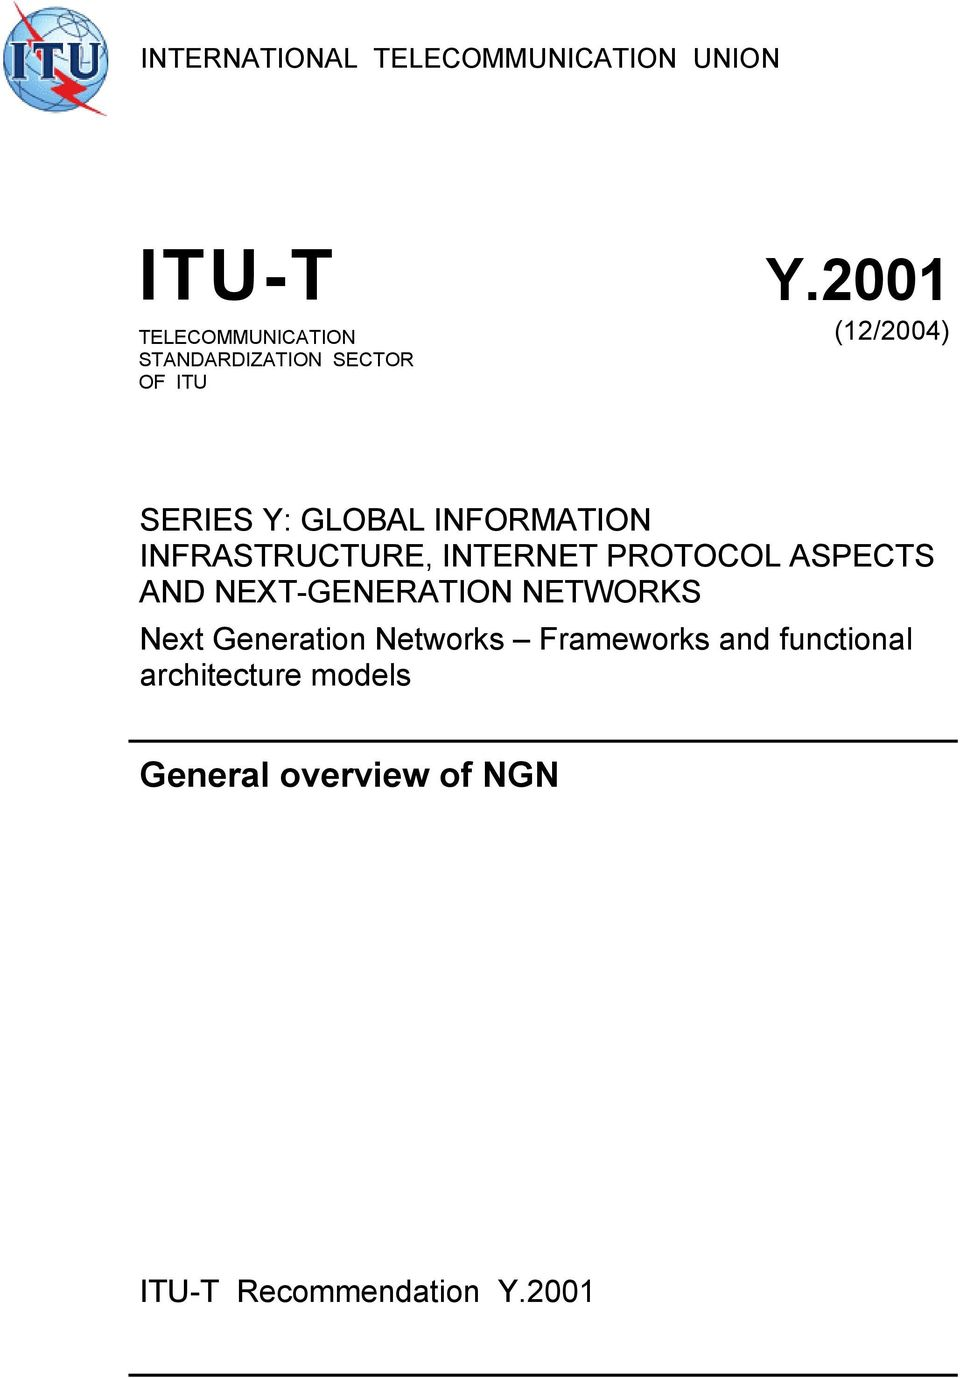 INFORMATION INFRASTRUCTURE, INTERNET PROTOCOL ASPECTS AND NEXT-GENERATION NETWORKS